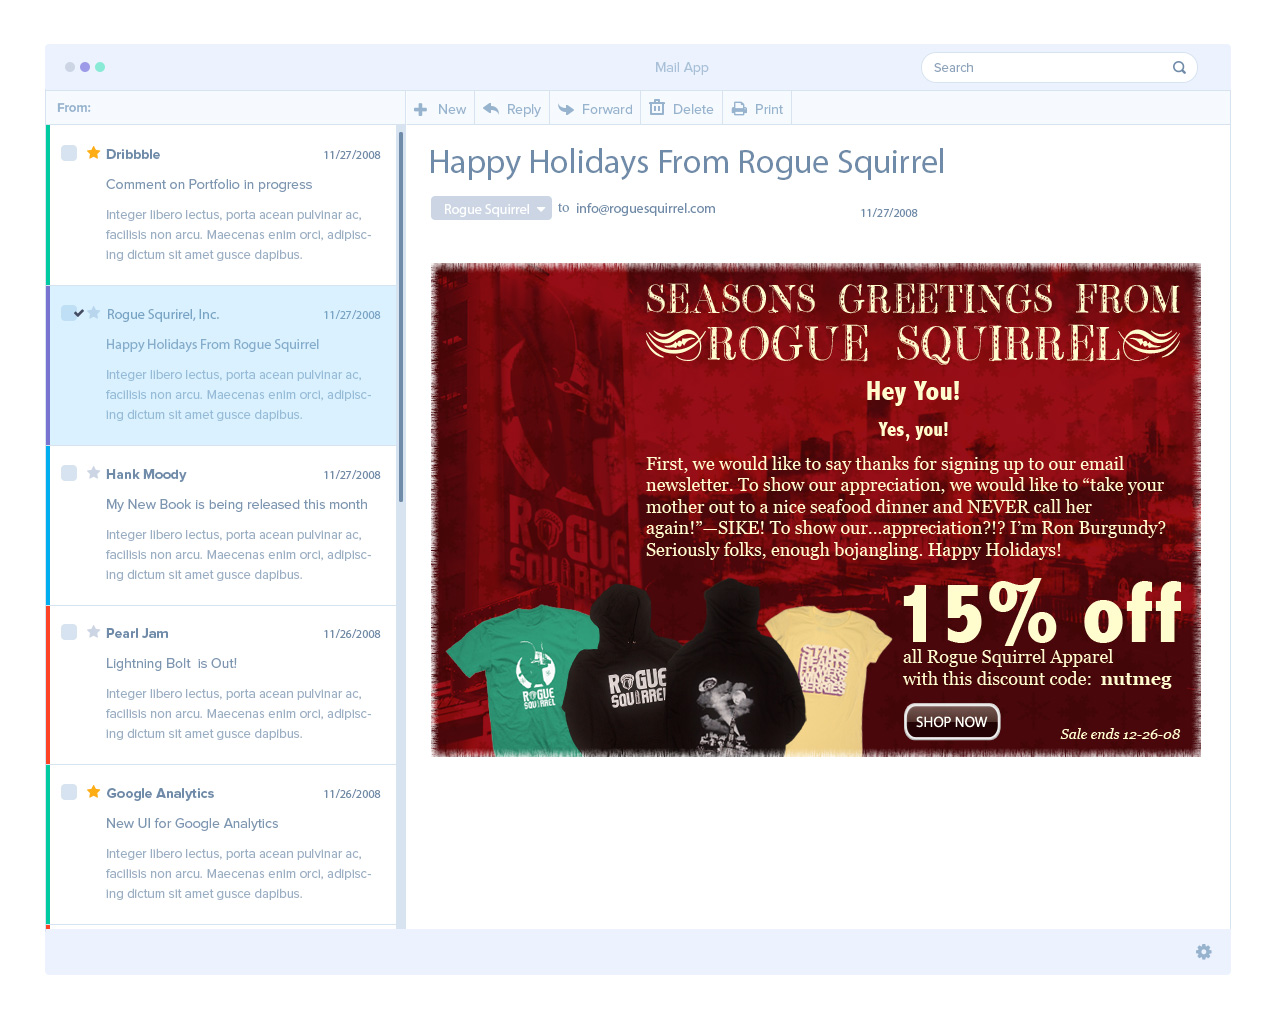 Rogue Squirrel Email Ad